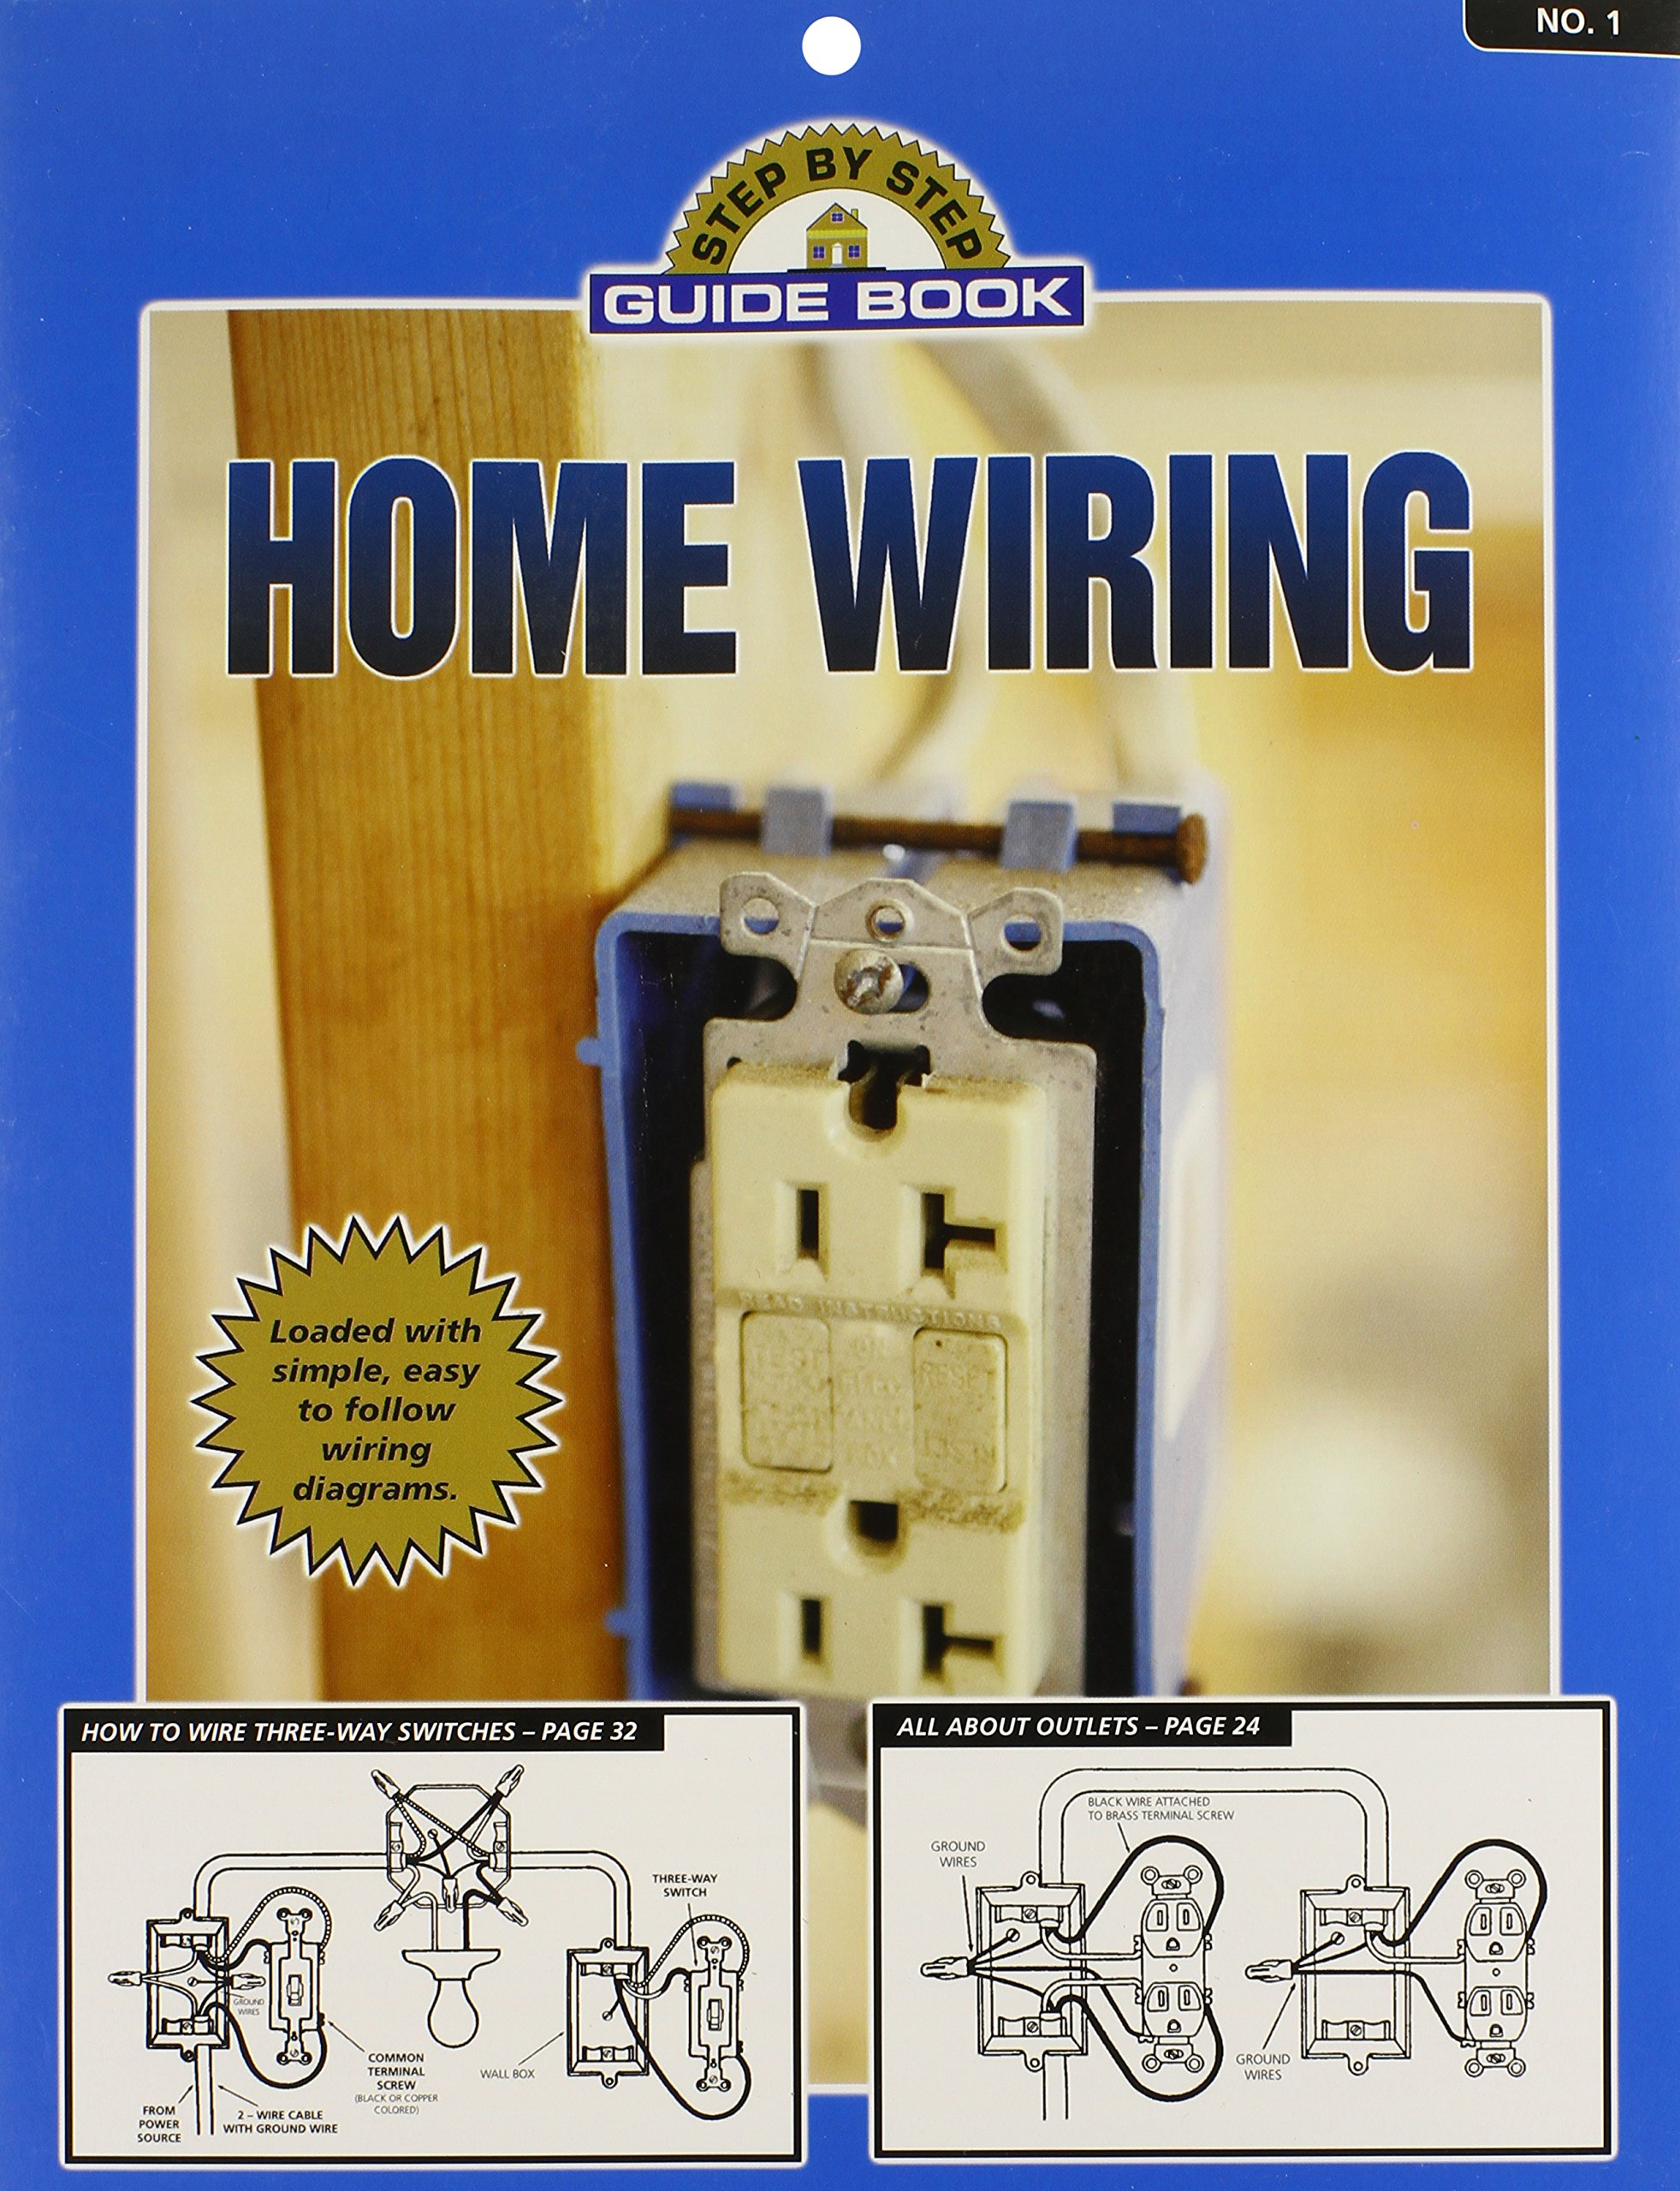 Step By Guide Book On Home Wiring Ray Mcreynolds Elaine Diagram Outlet Get Free Image About Shane E Richins 9780961920104 Books